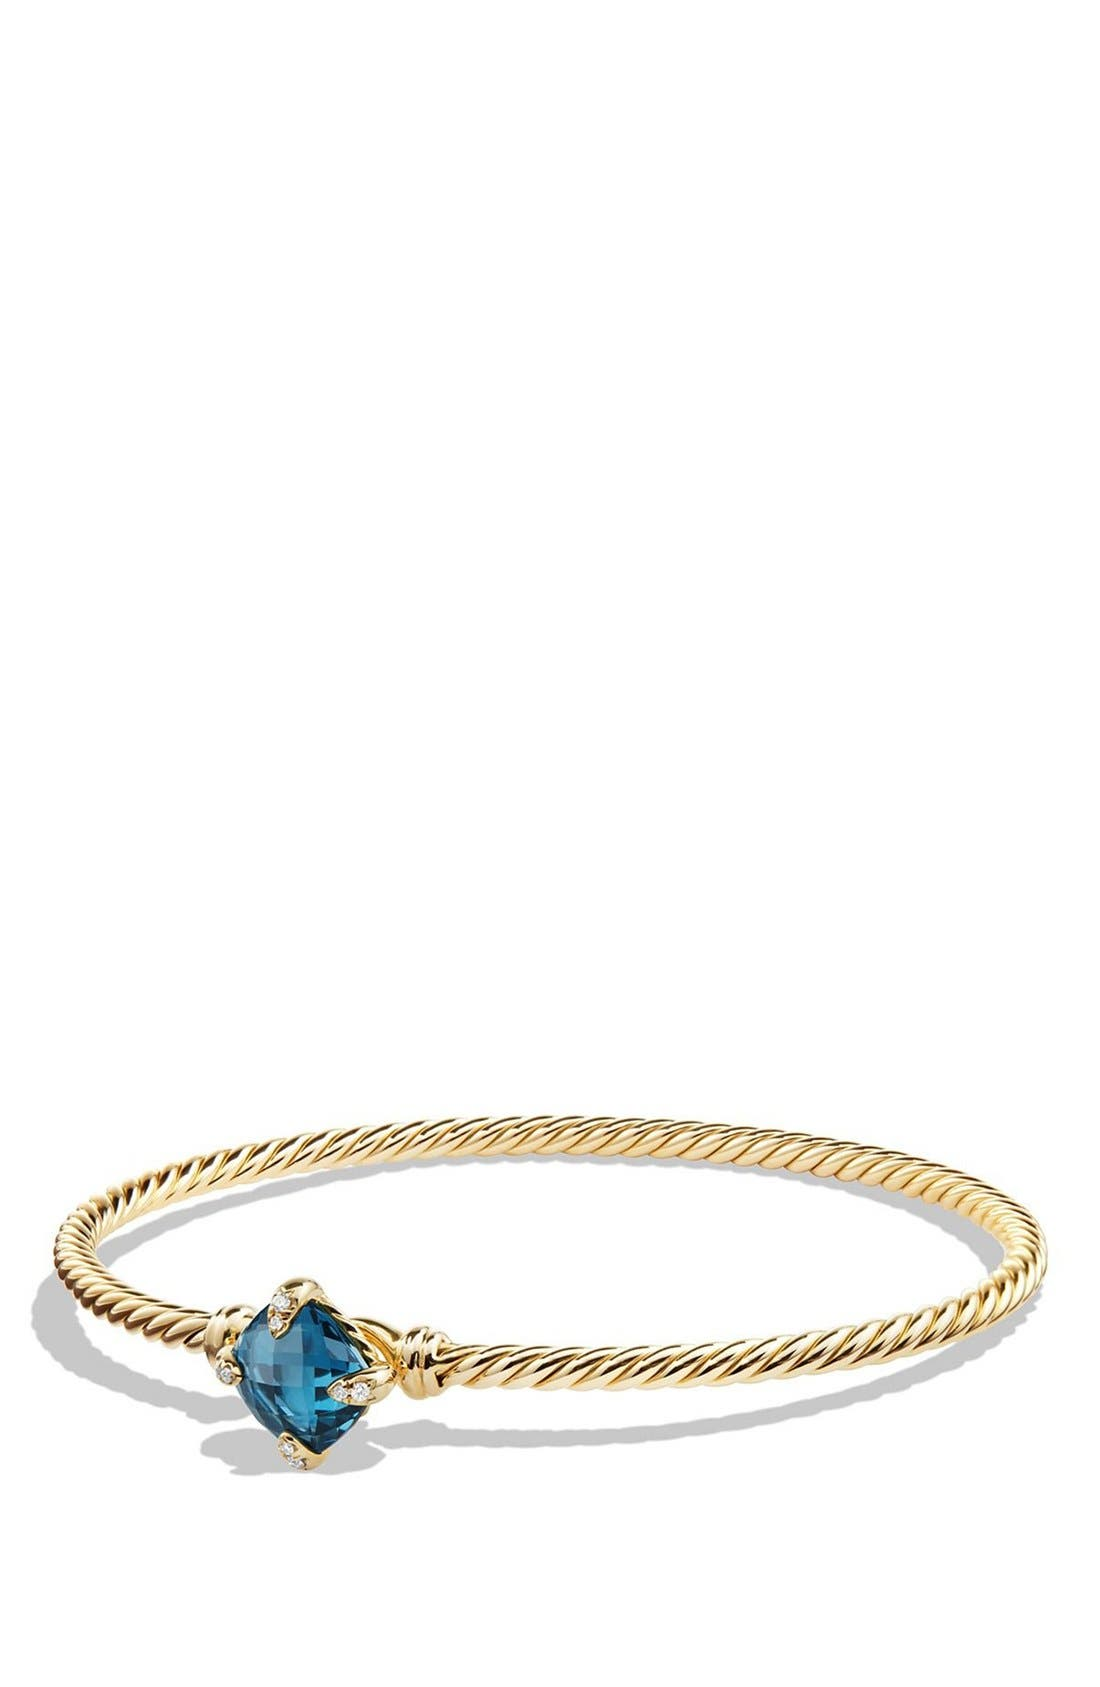 'Châtelaine' Bracelet in 18K Gold with Diamonds,                         Main,                         color, HAMPTON BLUE TOPAZ